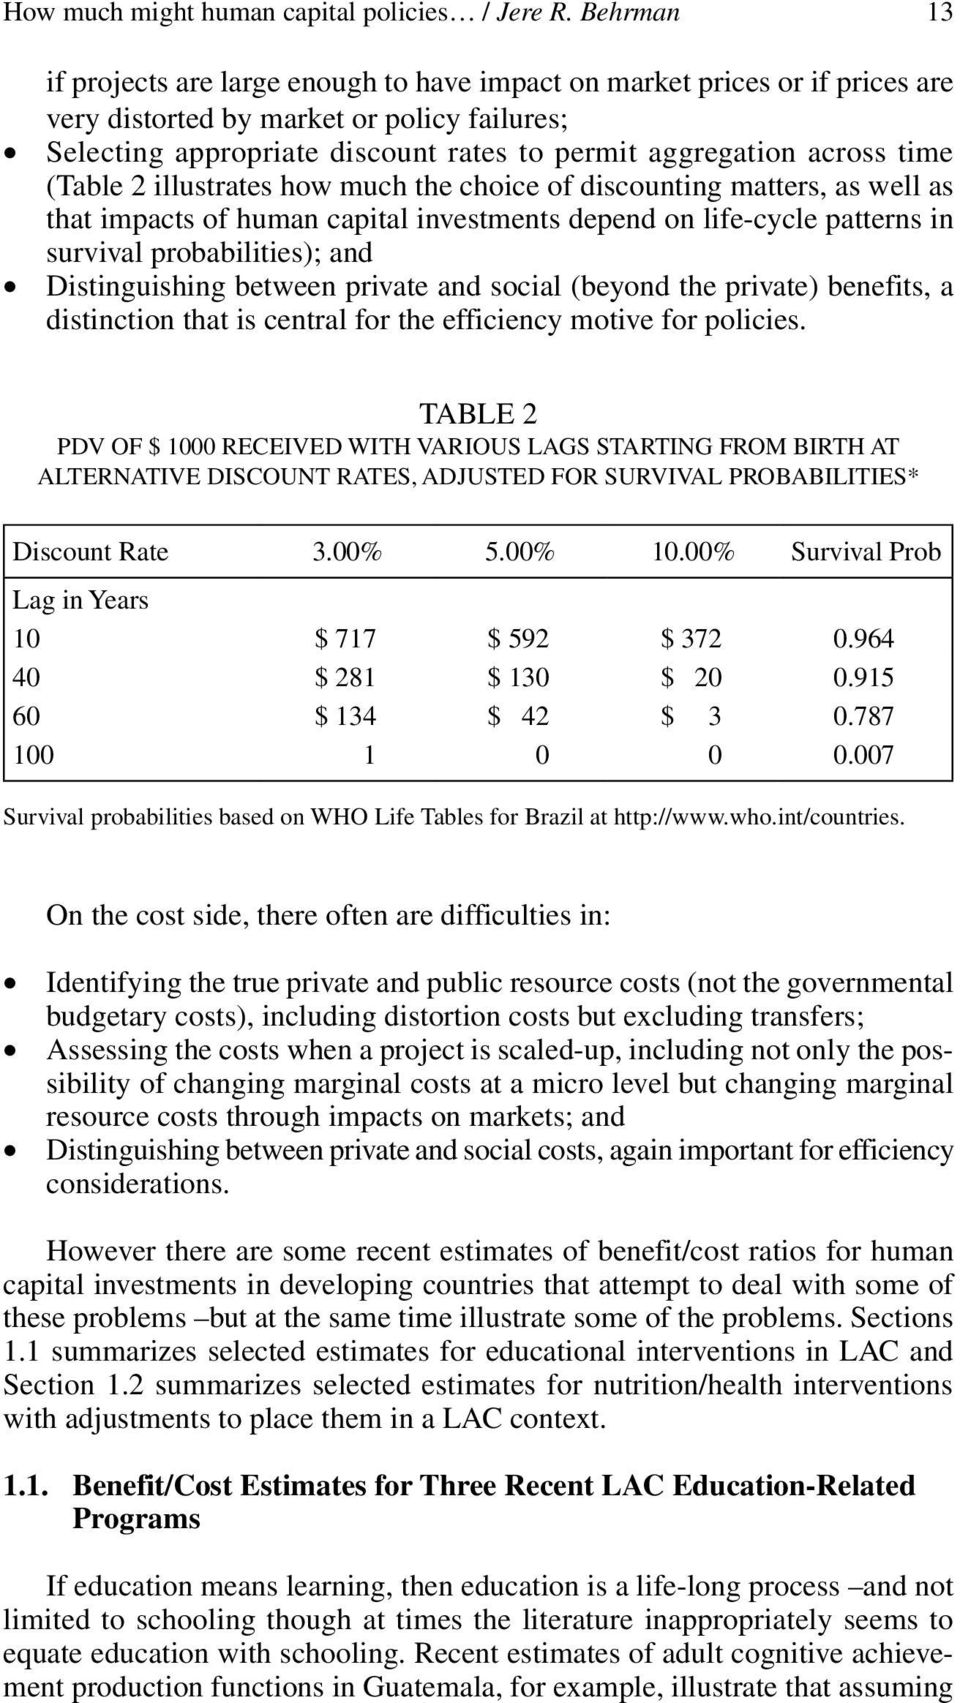 time (Table 2 illustrates how much the choice of discounting matters, as well as that impacts of human capital investments depend on life-cycle patterns in survival probabilities); and Distinguishing